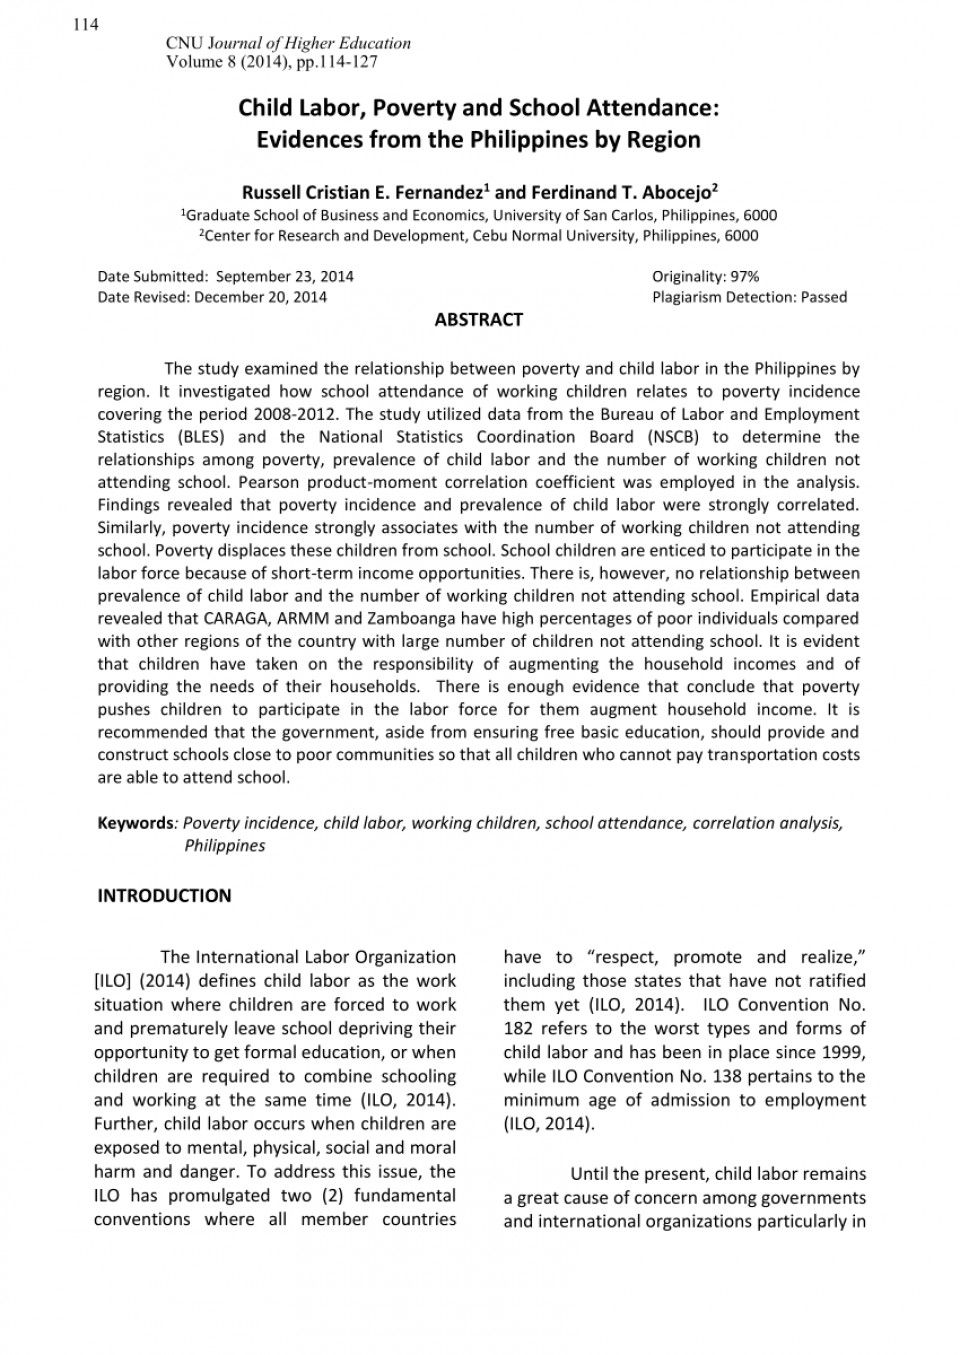 003 Largepreview Poverty In The Philippines Research Paper Remarkable Abstract 960